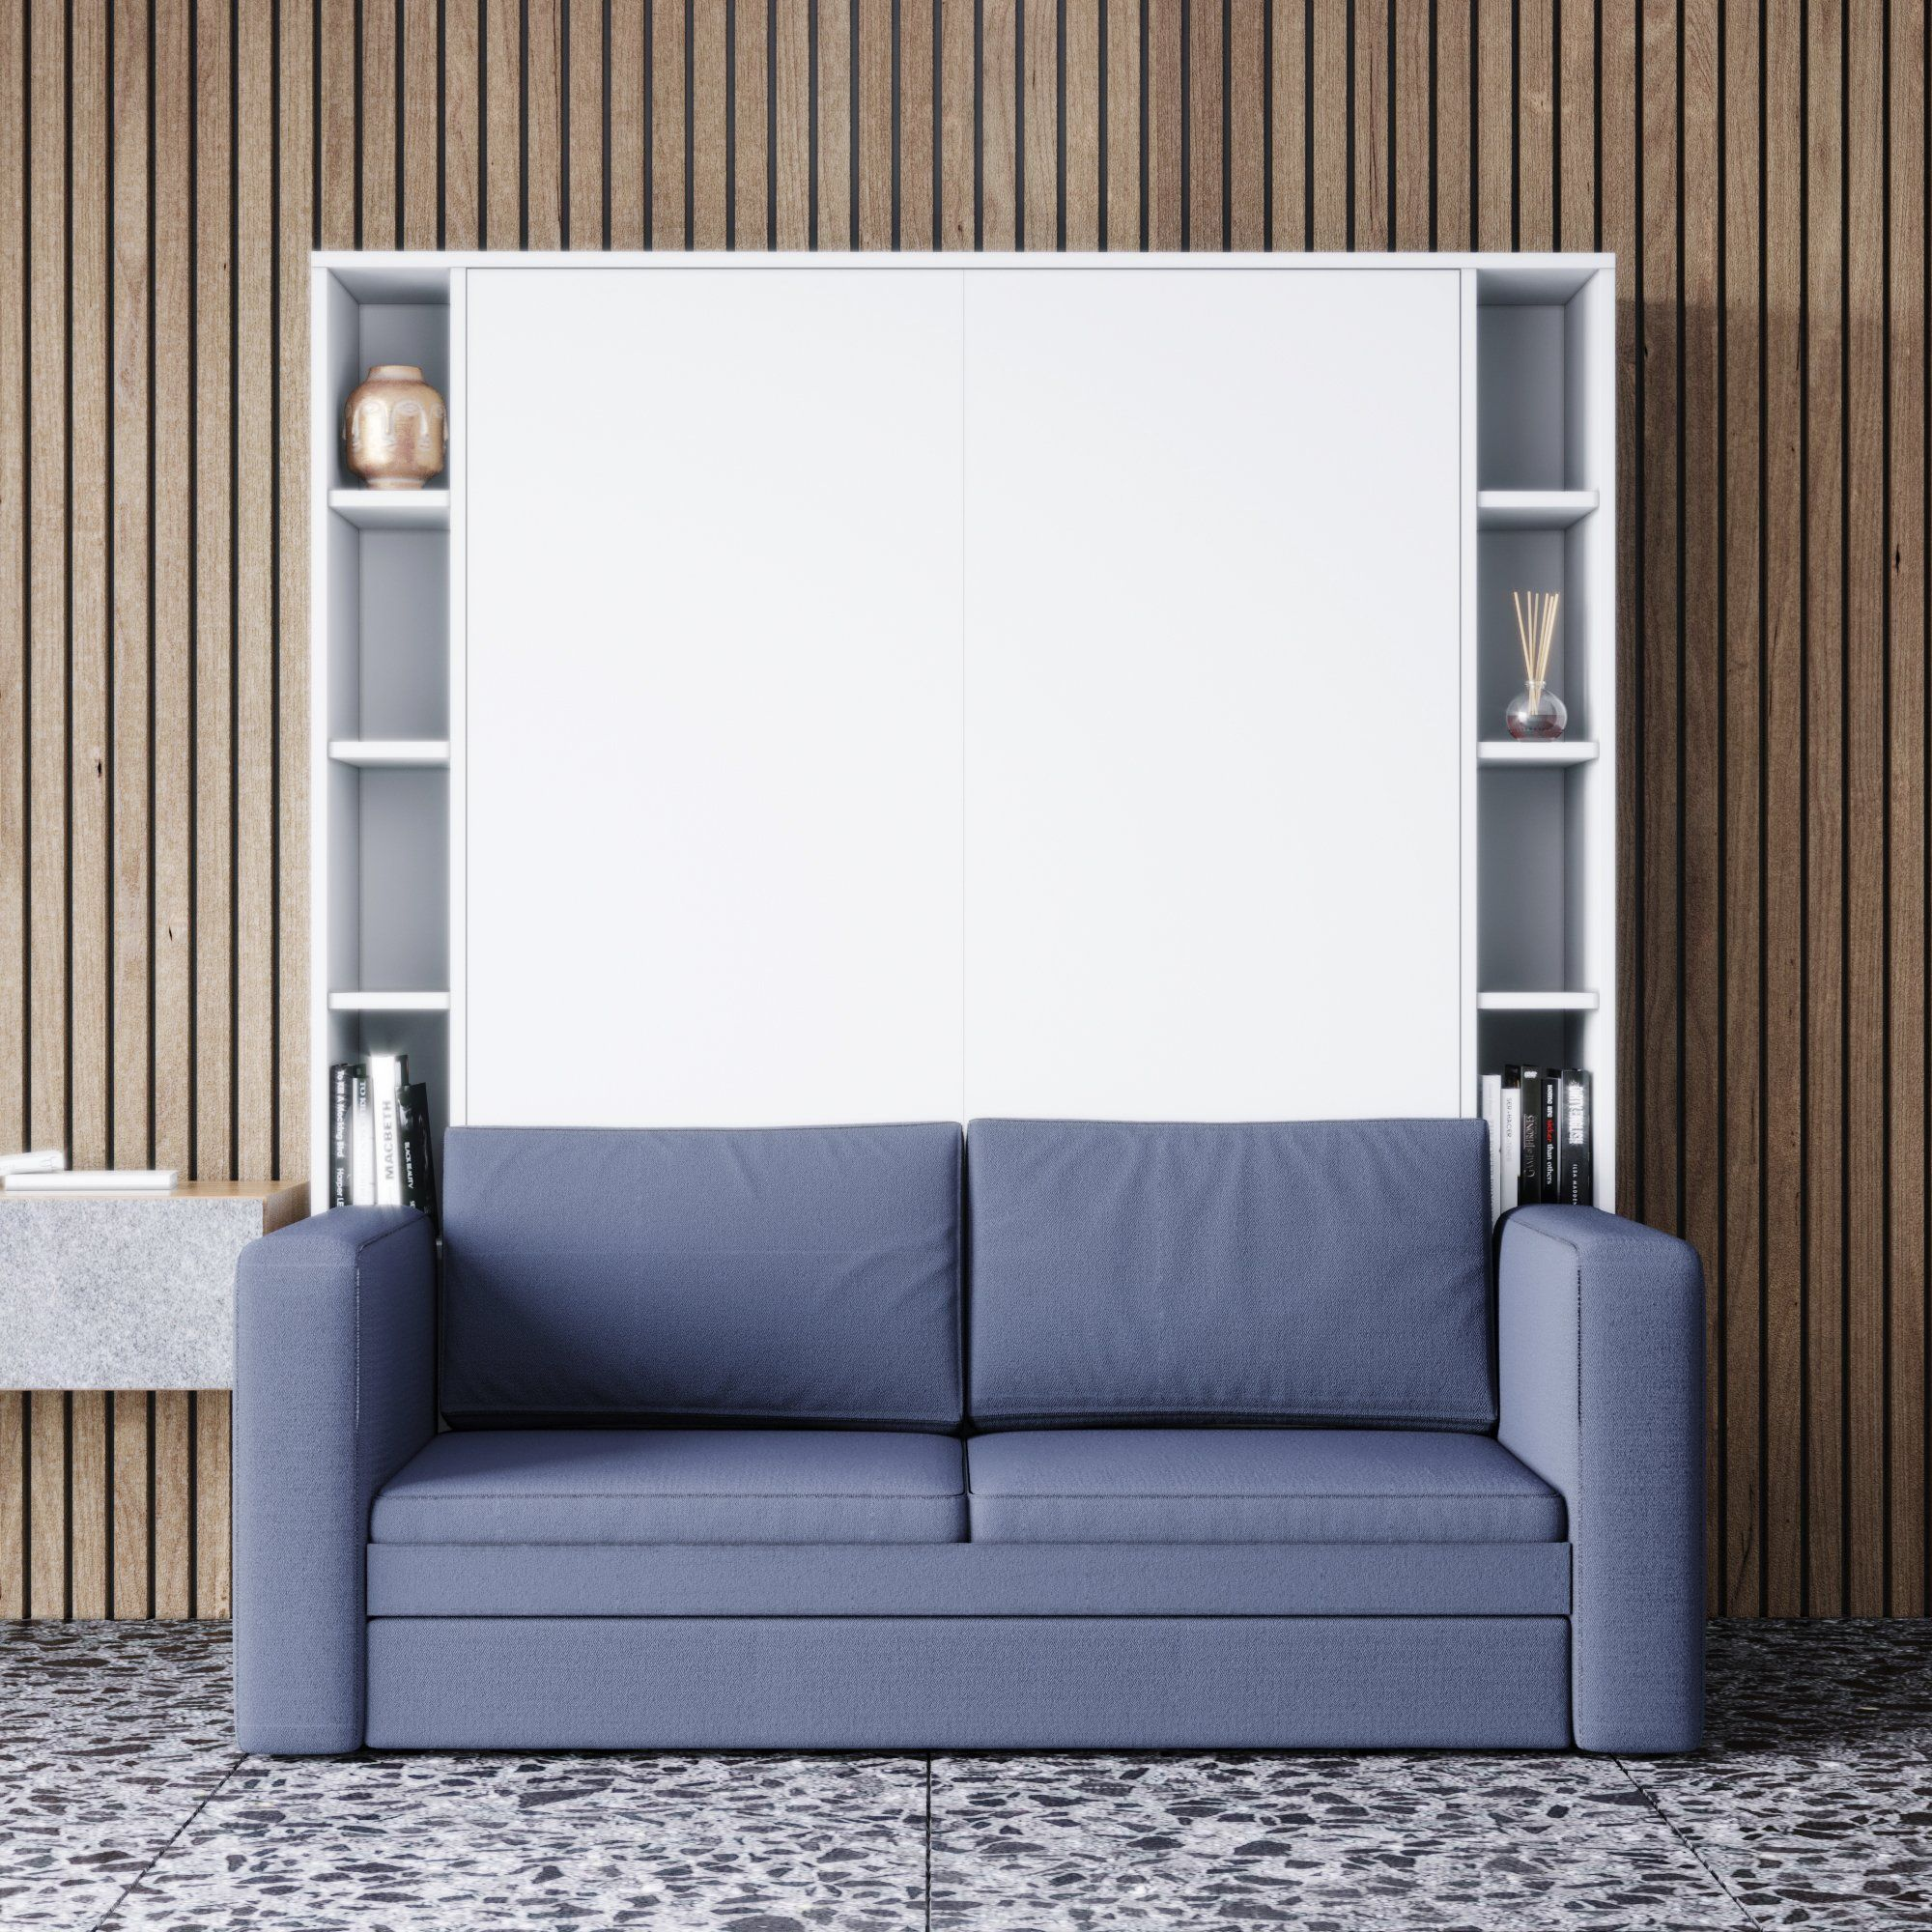 Luxoria White with Shelves and Sofa in 2020 Murphy bed